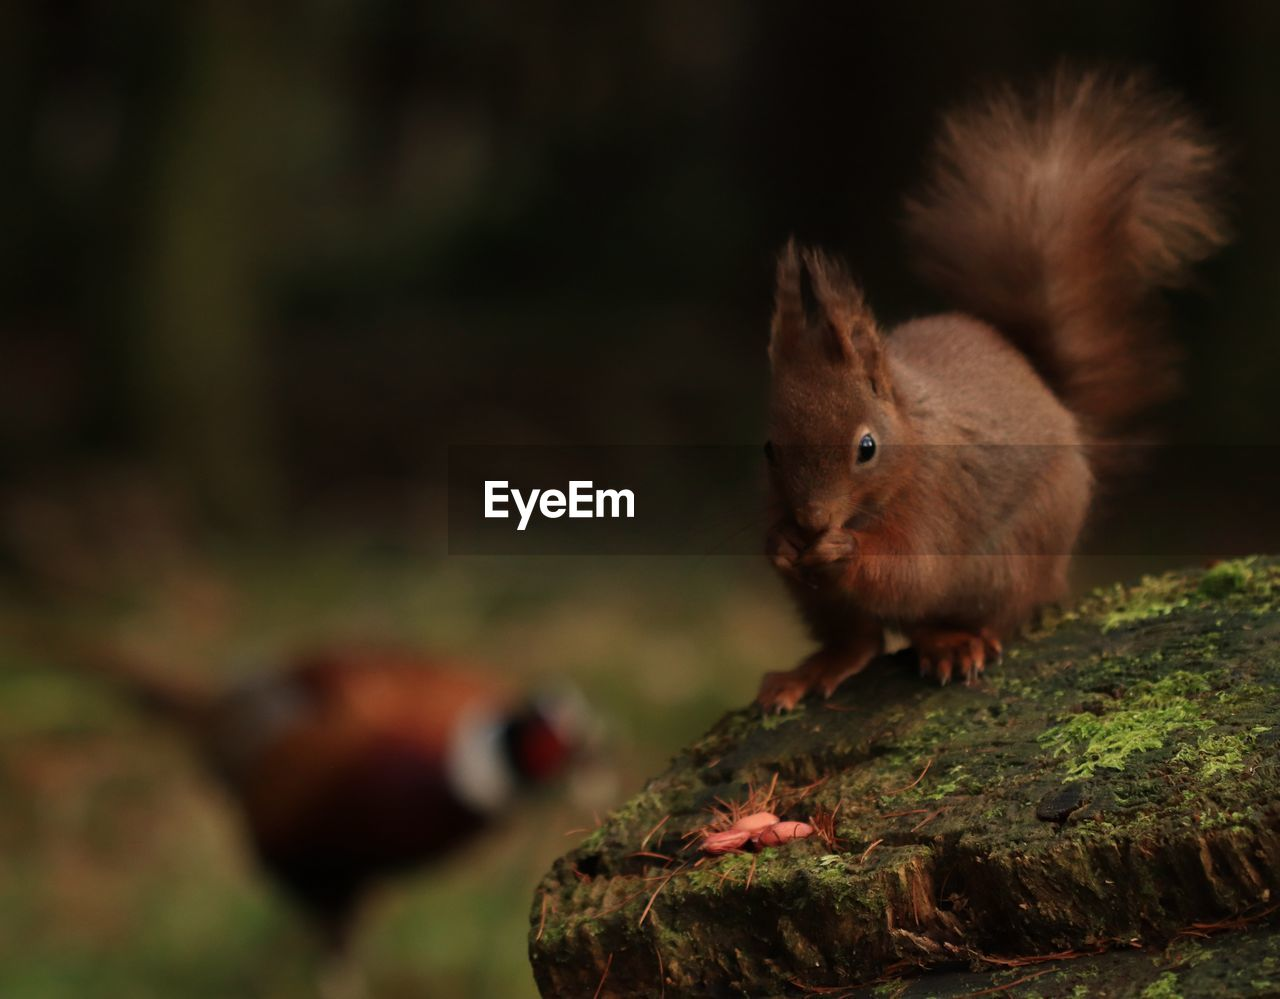 animal, animal themes, mammal, one animal, rodent, animal wildlife, animals in the wild, no people, focus on foreground, close-up, squirrel, vertebrate, day, nature, selective focus, tree, outdoors, land, side view, moss, bark, whisker